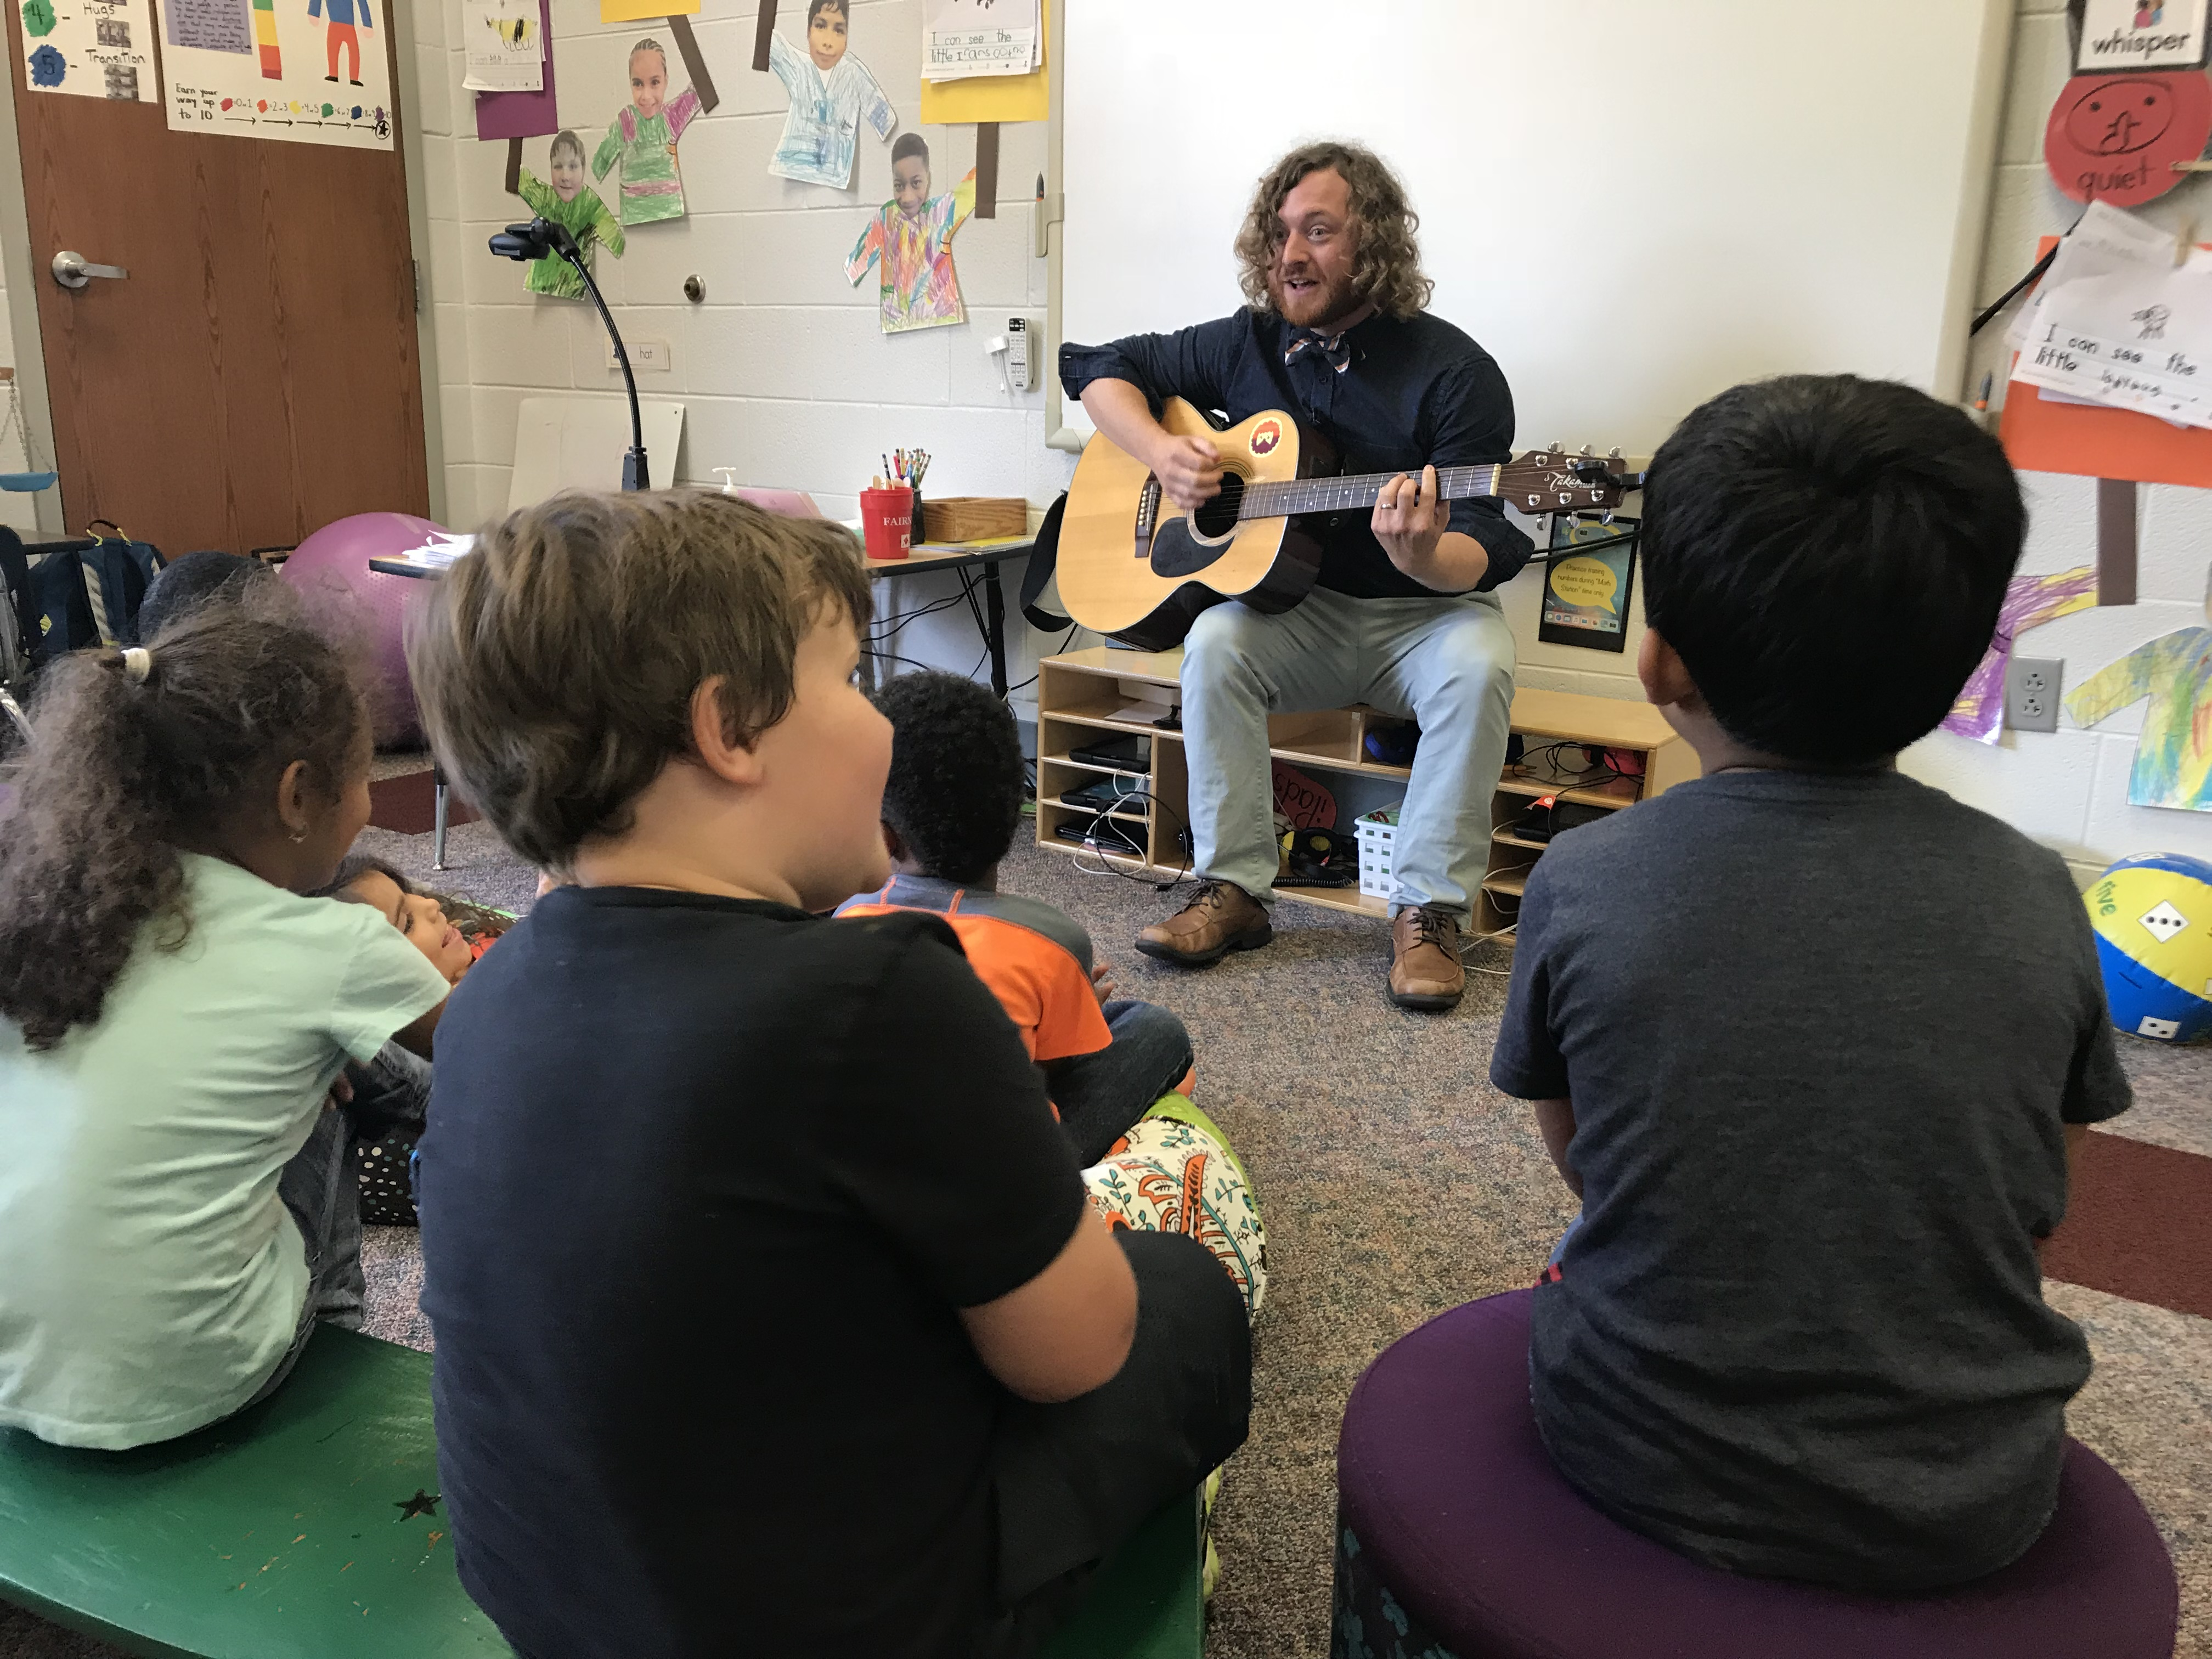 Christenberry Elementary teacher Michael 'Mac' Comer plays the guitar for his kindergarten class on Oct. 4, 2018